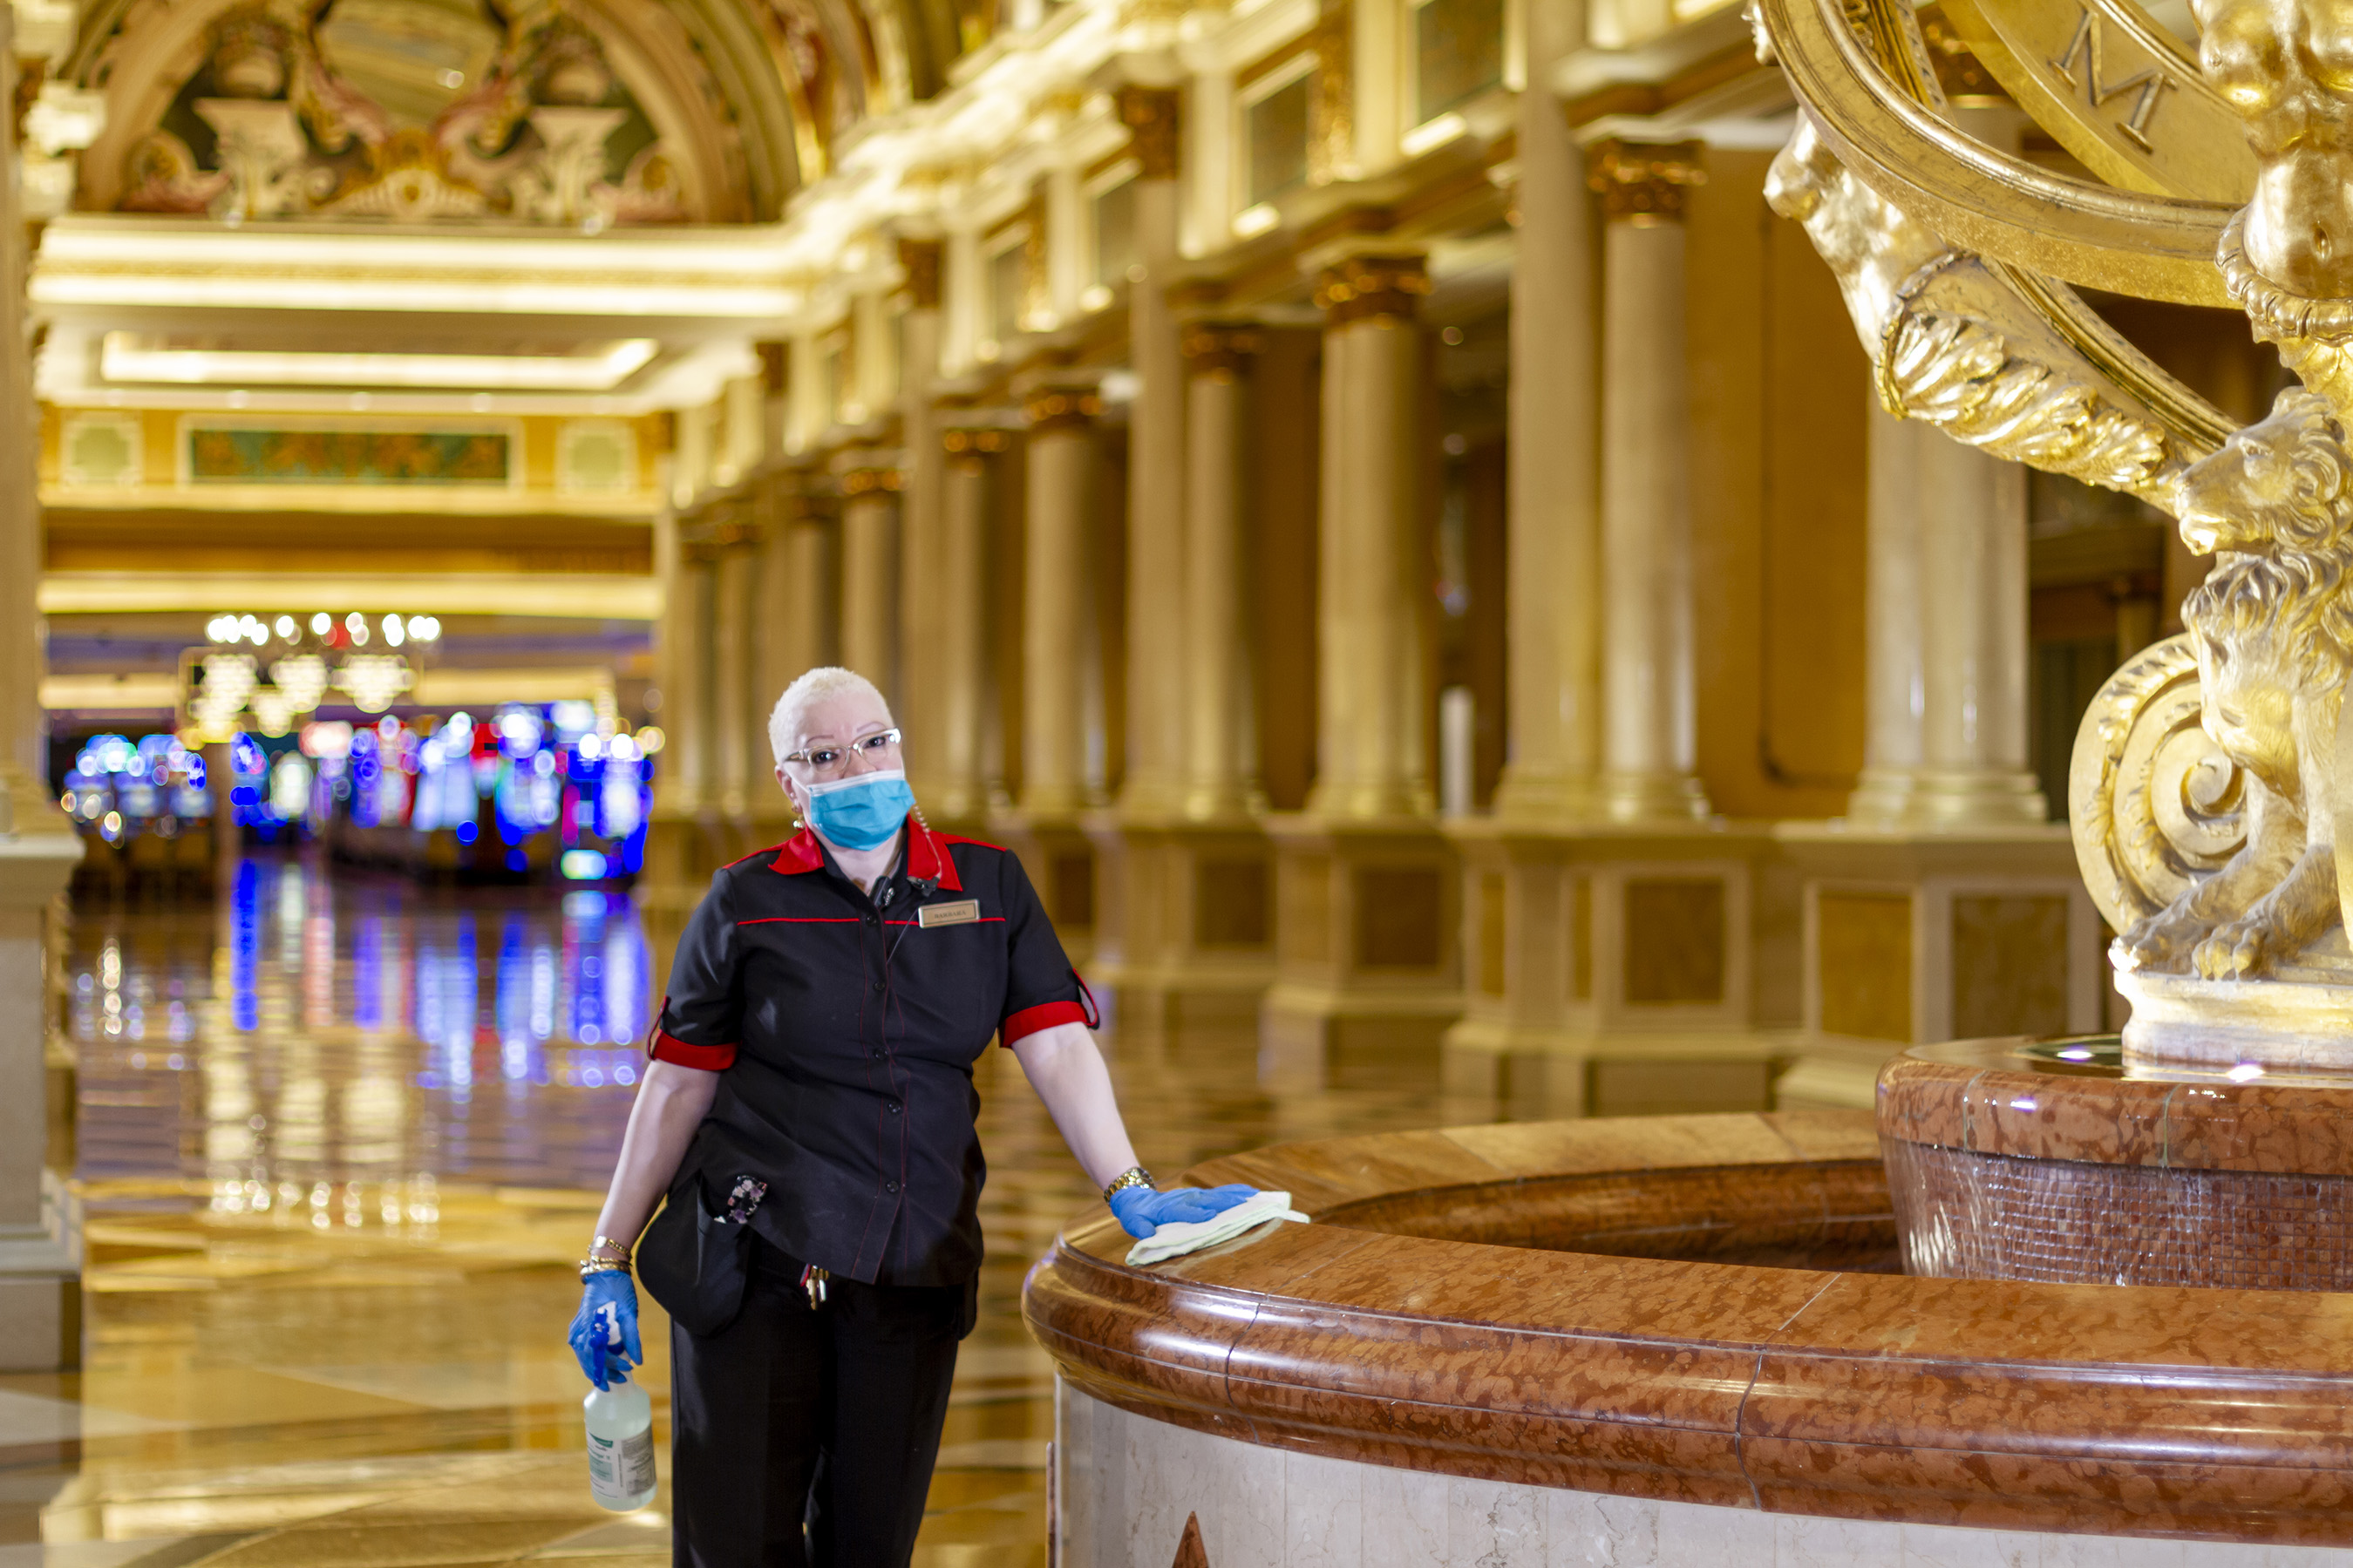 All Team Members received additional training on COVID-19 safety and sanitization protocols, as well as more comprehensive training for our teams with frequent guest contact including housekeeping, food & beverage, public areas, hotel operations and security.